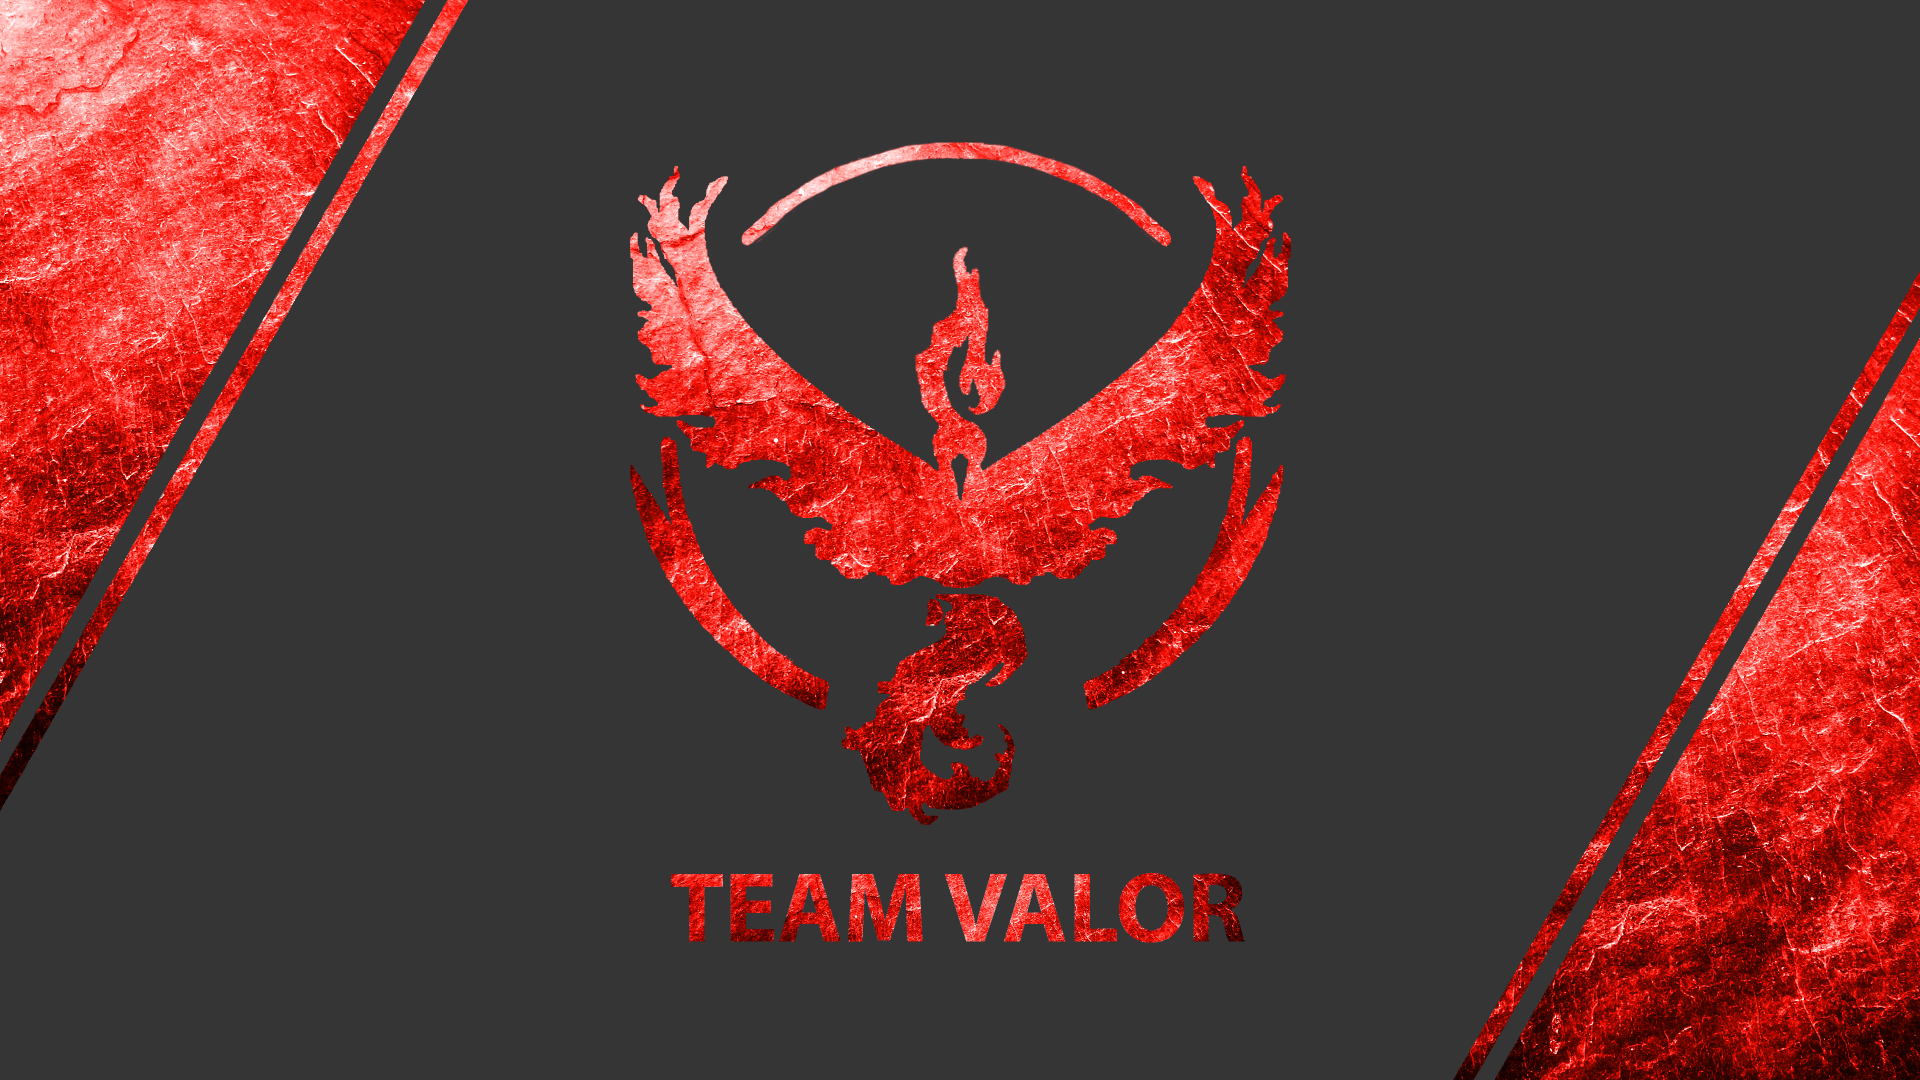 Video Game - Pokémon GO  Pokemon Go Pokémon Team Valor Moltres (Pokémon) Wallpaper